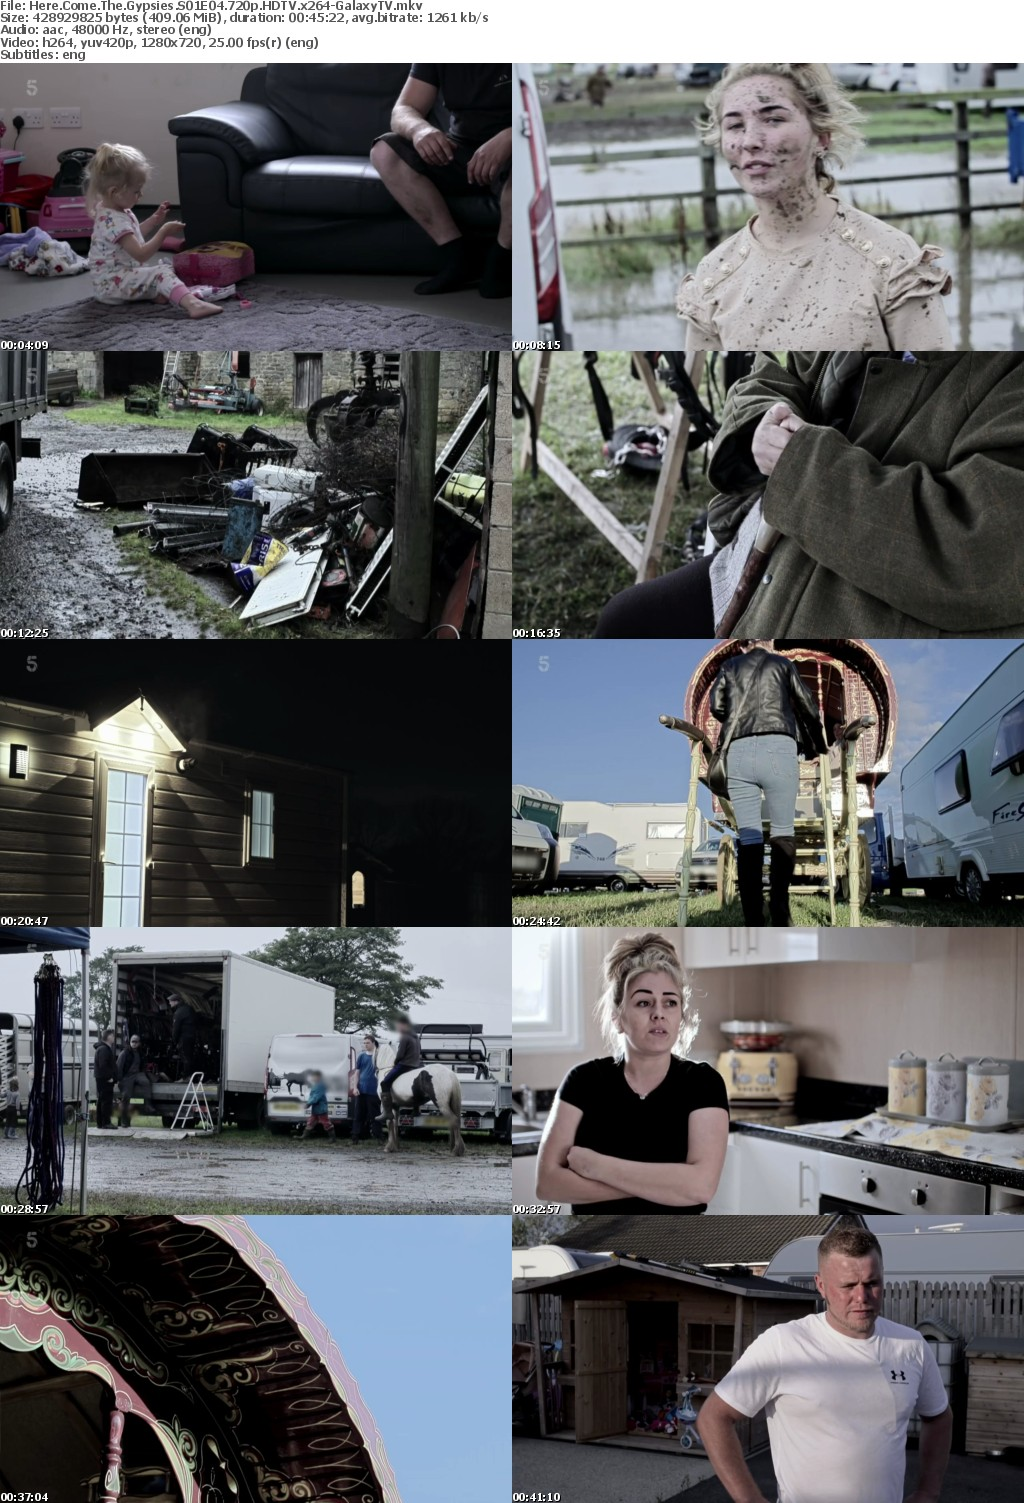 Here Come The Gypsies S01 COMPLETE 720p HDTV x264-GalaxyTV